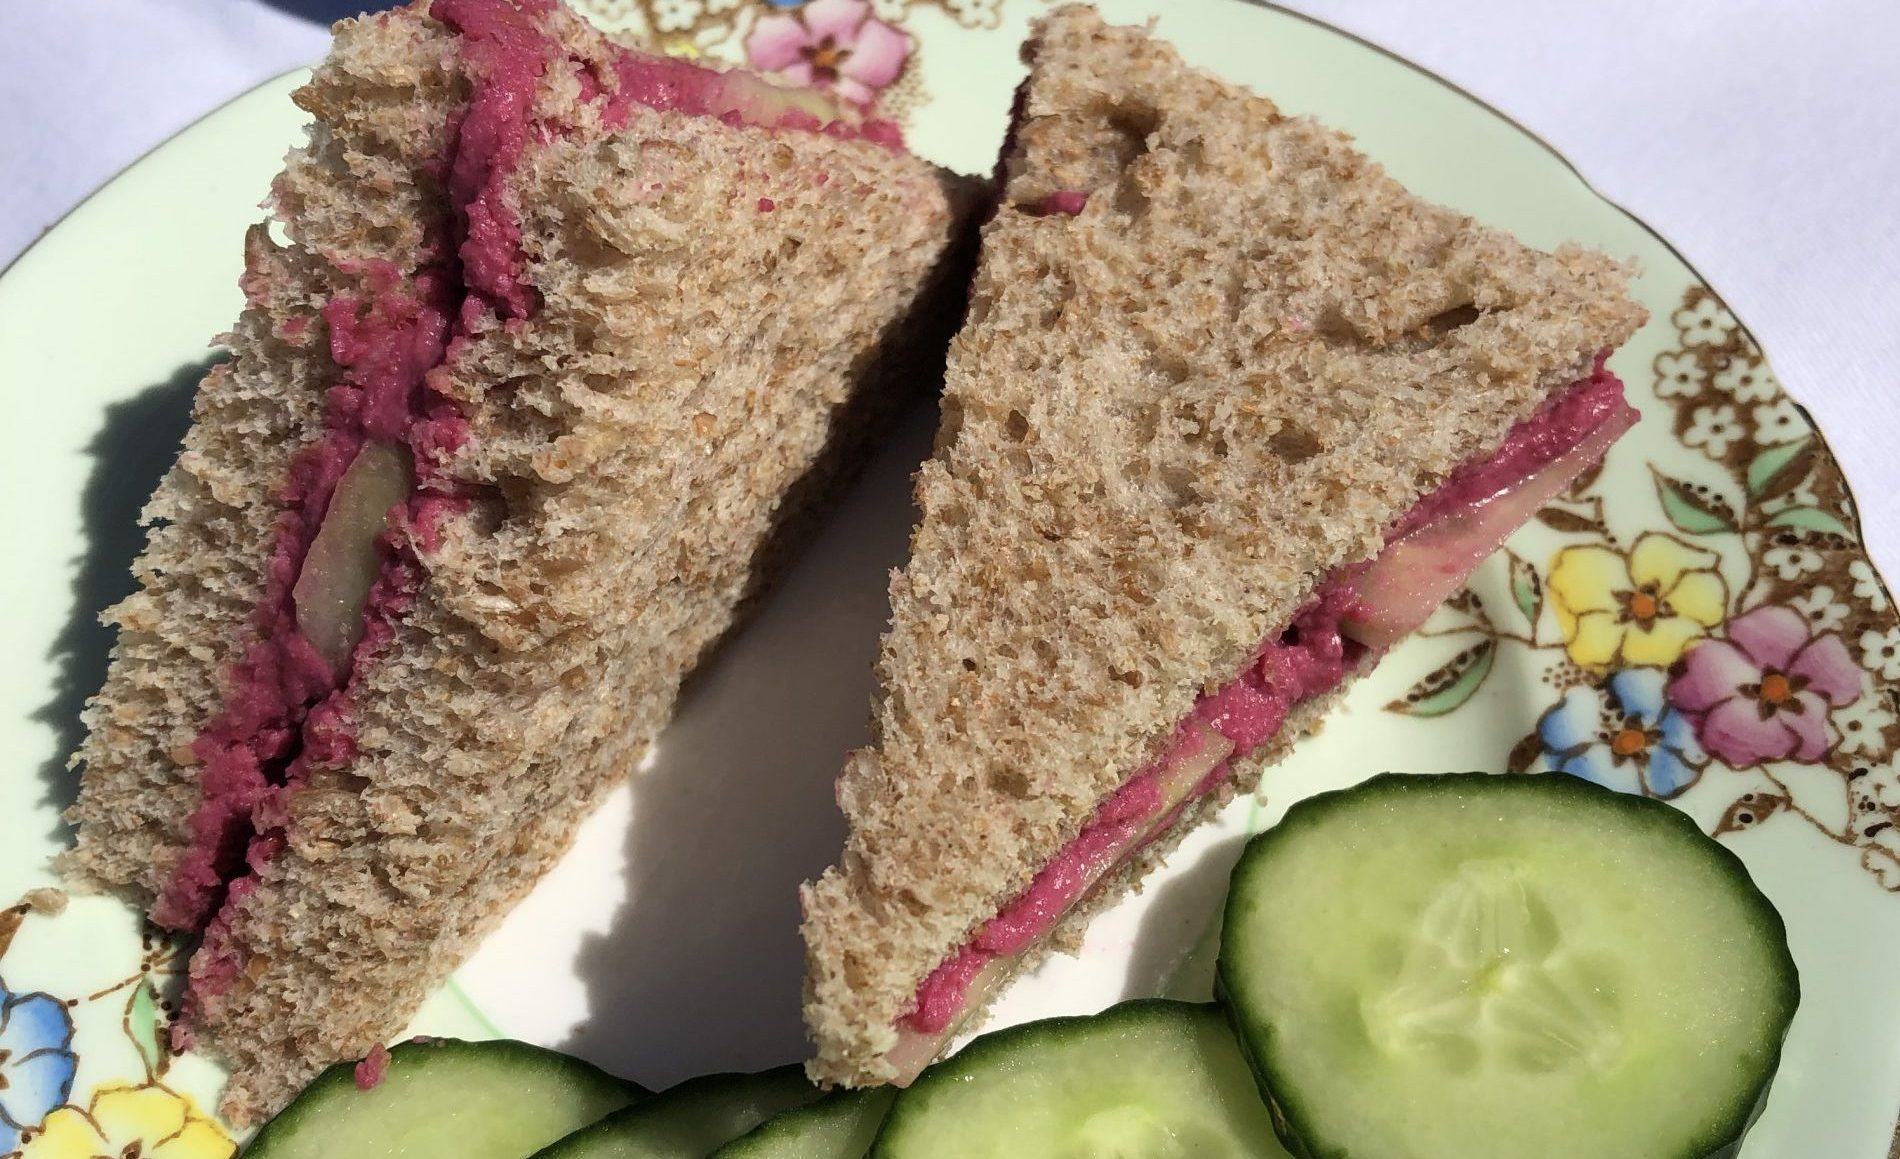 Beetroot, Hummus and Cucumber Sandwiches